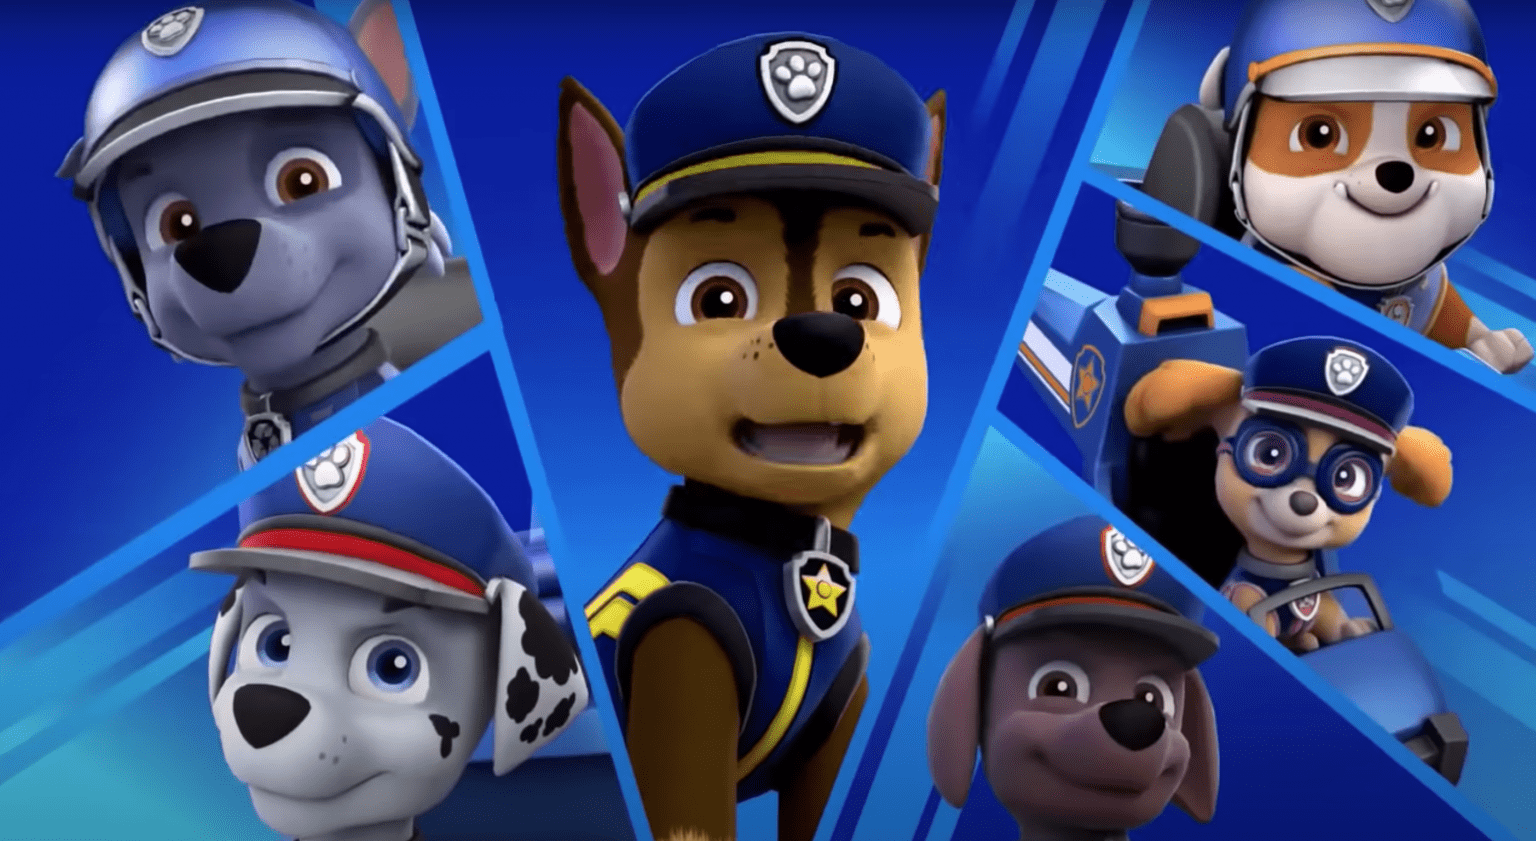 """Editorial: New York Times writer upset that cartoon """"Paw Patrol"""" shows police in positive light"""